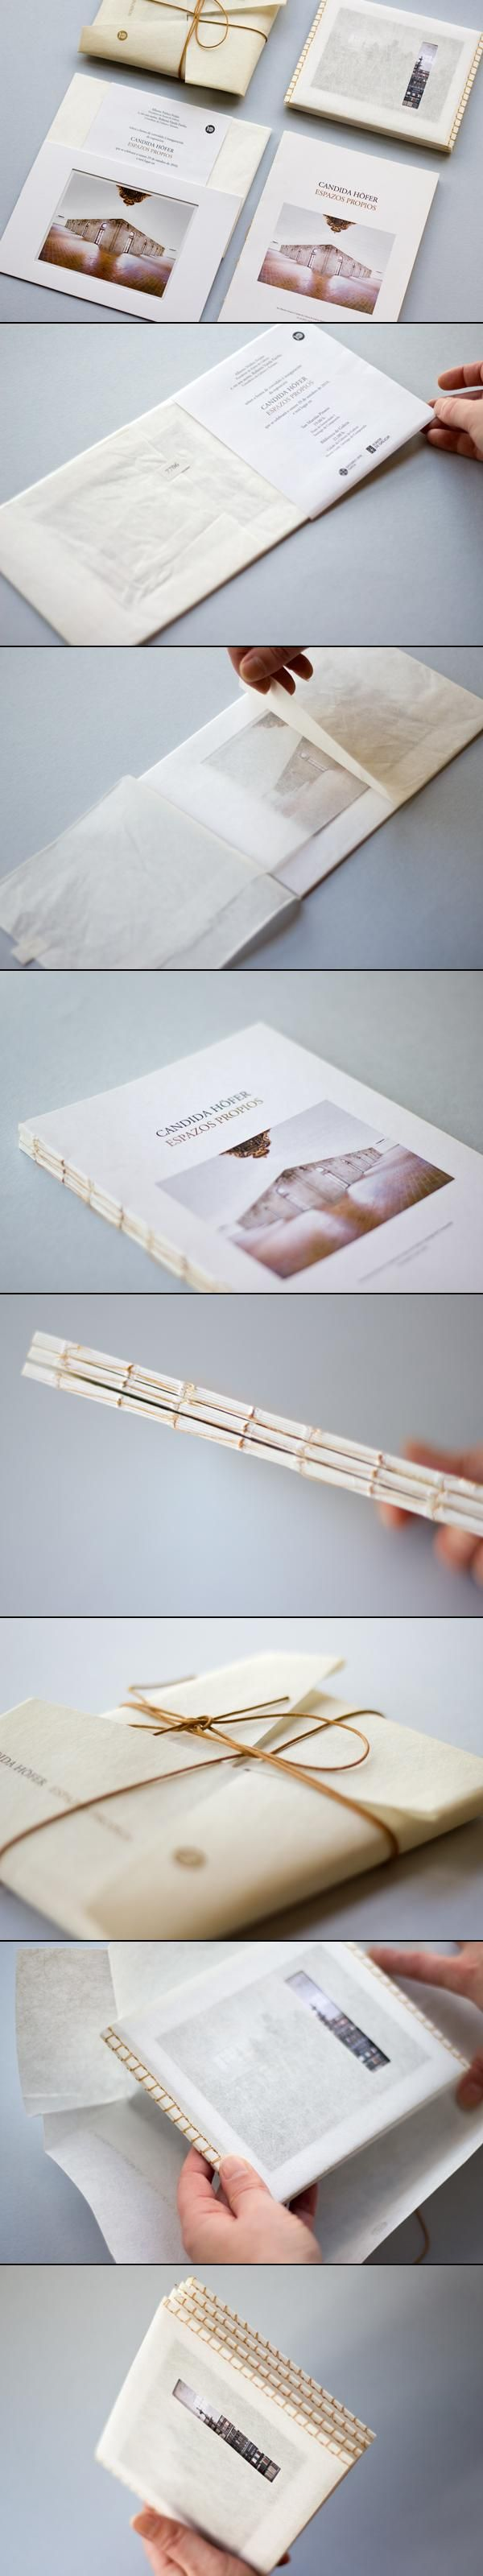 Candida Hofer. Espazos Propios - Editorial / Print / Graphic / Book design - Hand bound - Book binding